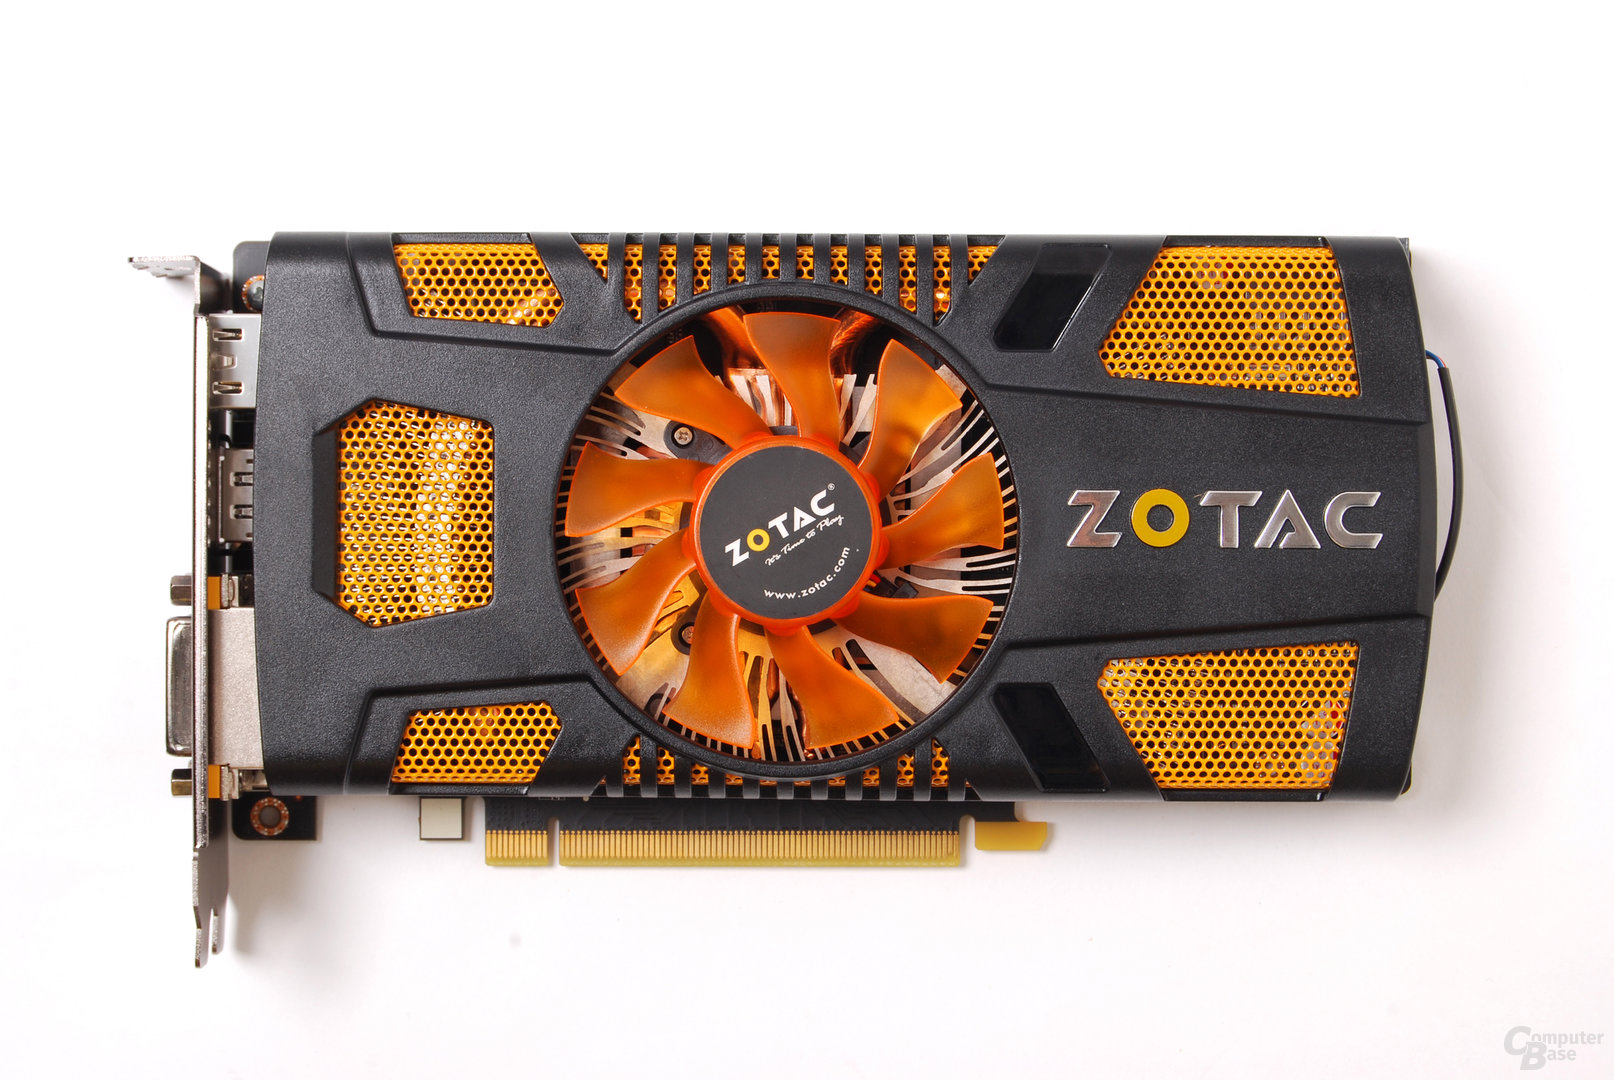 Zotac GeForce GTX 560 Multiview